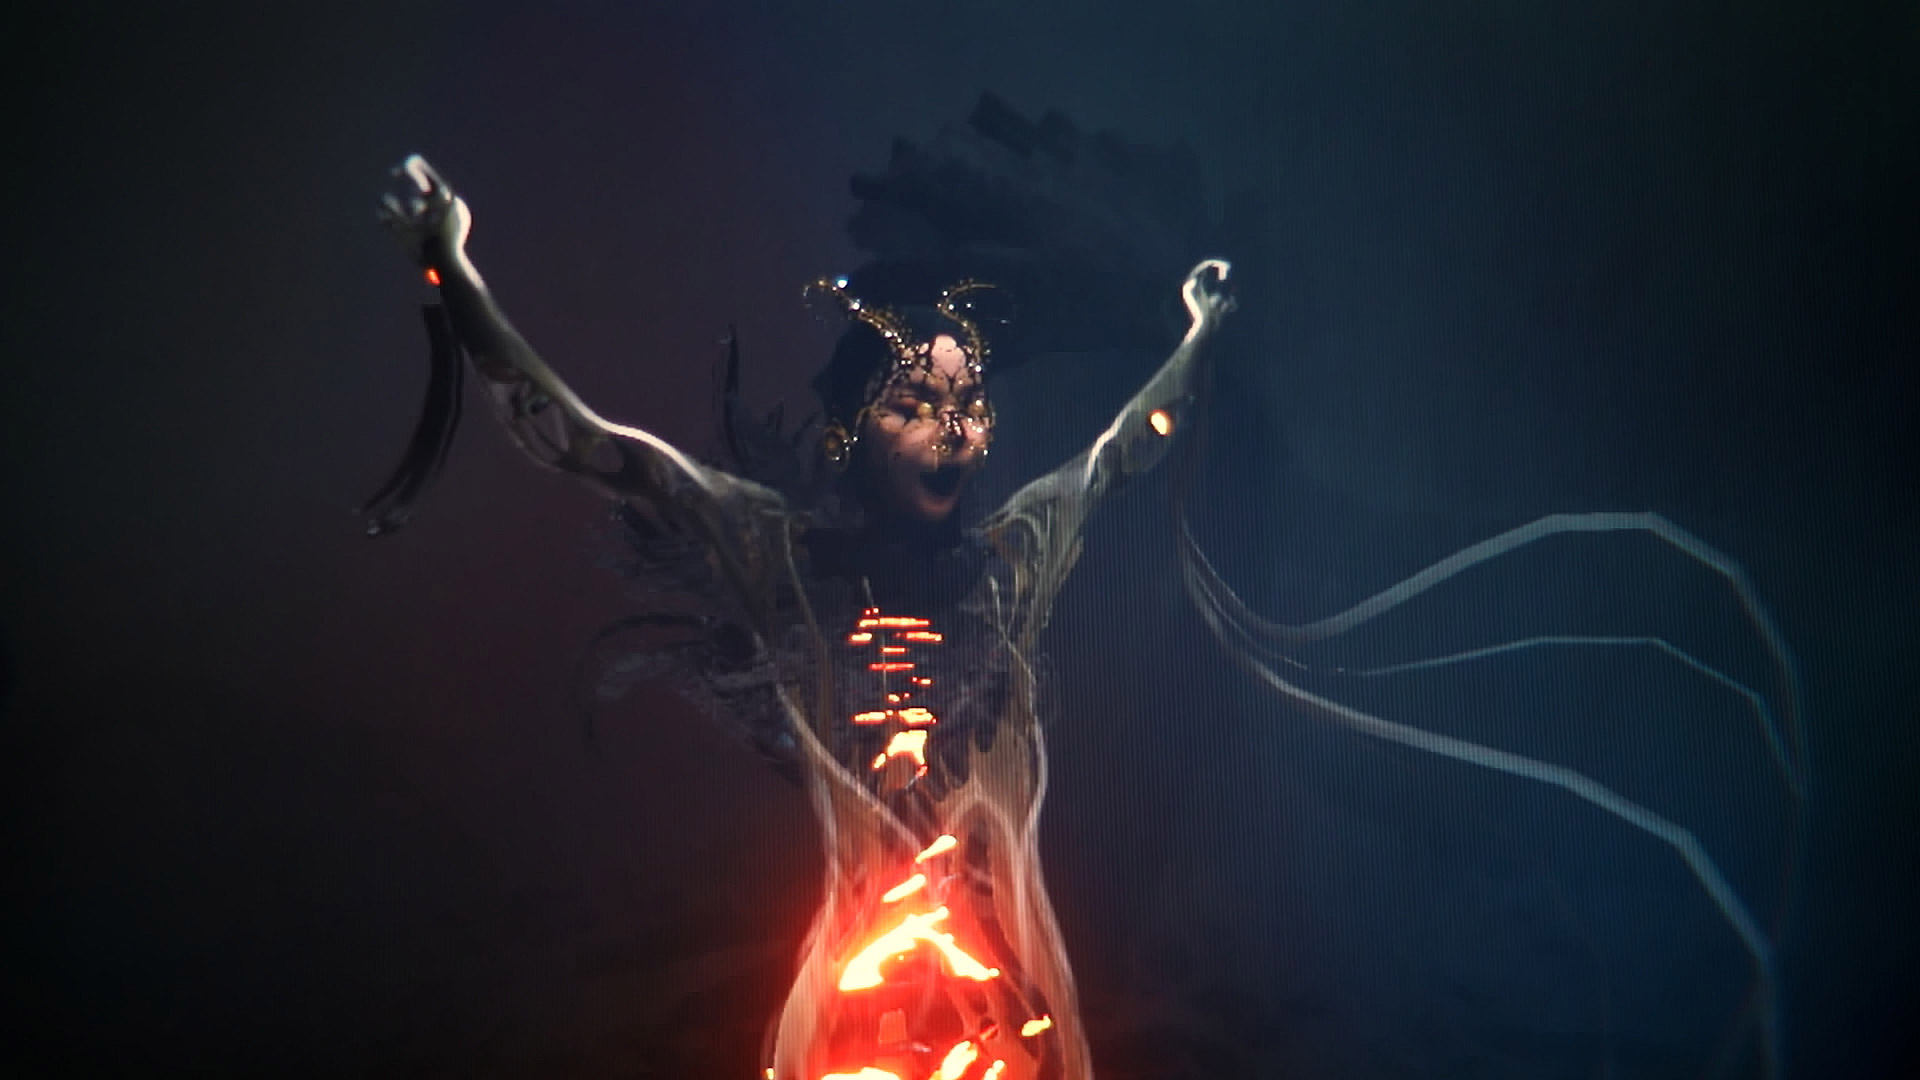 Björk Releases Vulnicura Virtual Reality Album – Road to VR